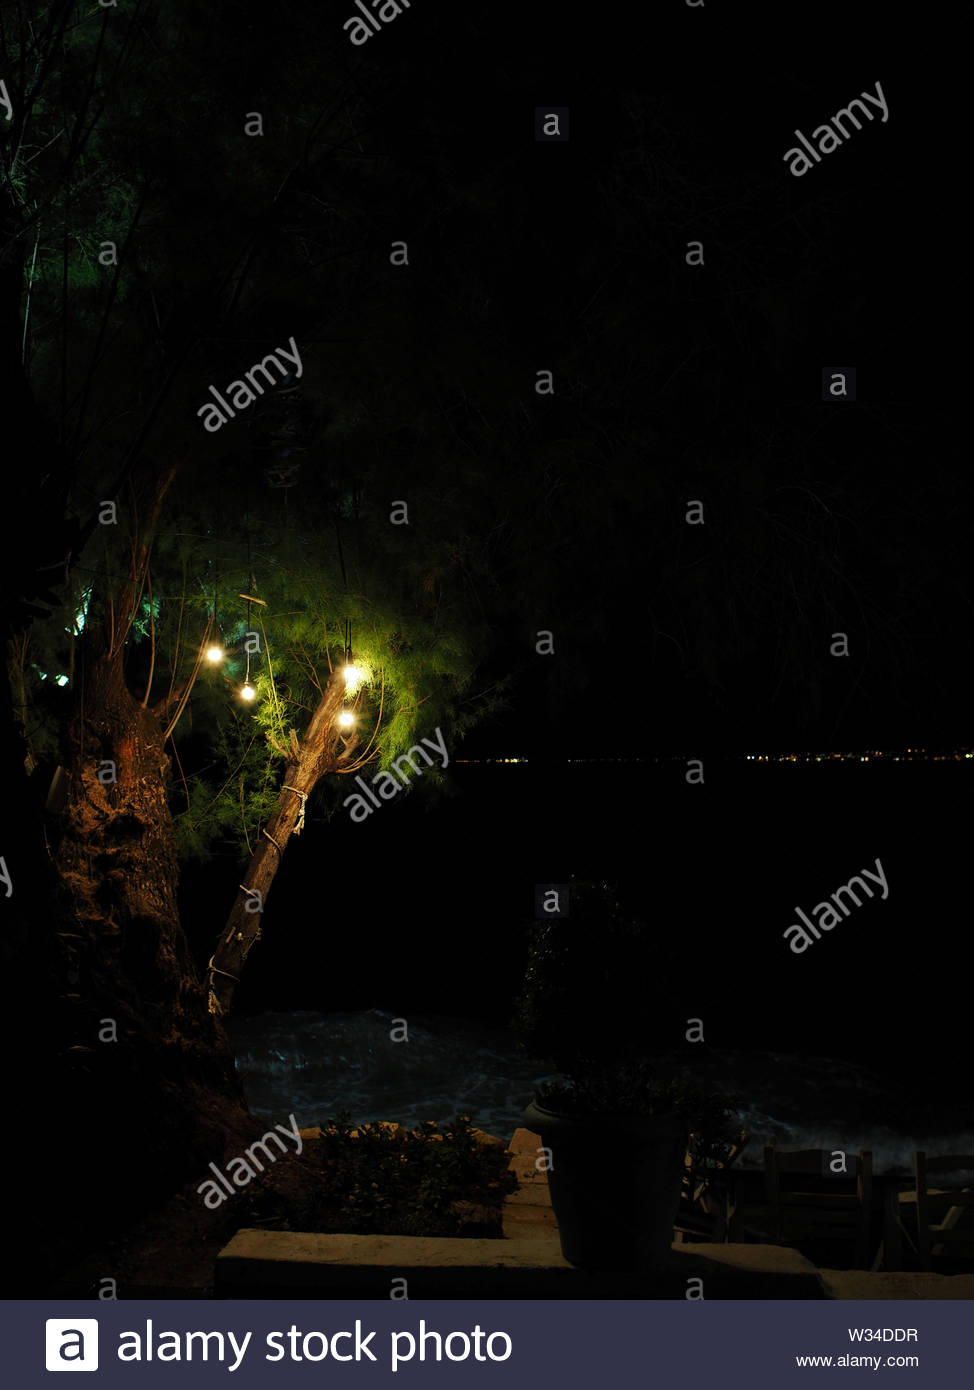 decorative electric bulbs attached on tree branch at night - Stock Image